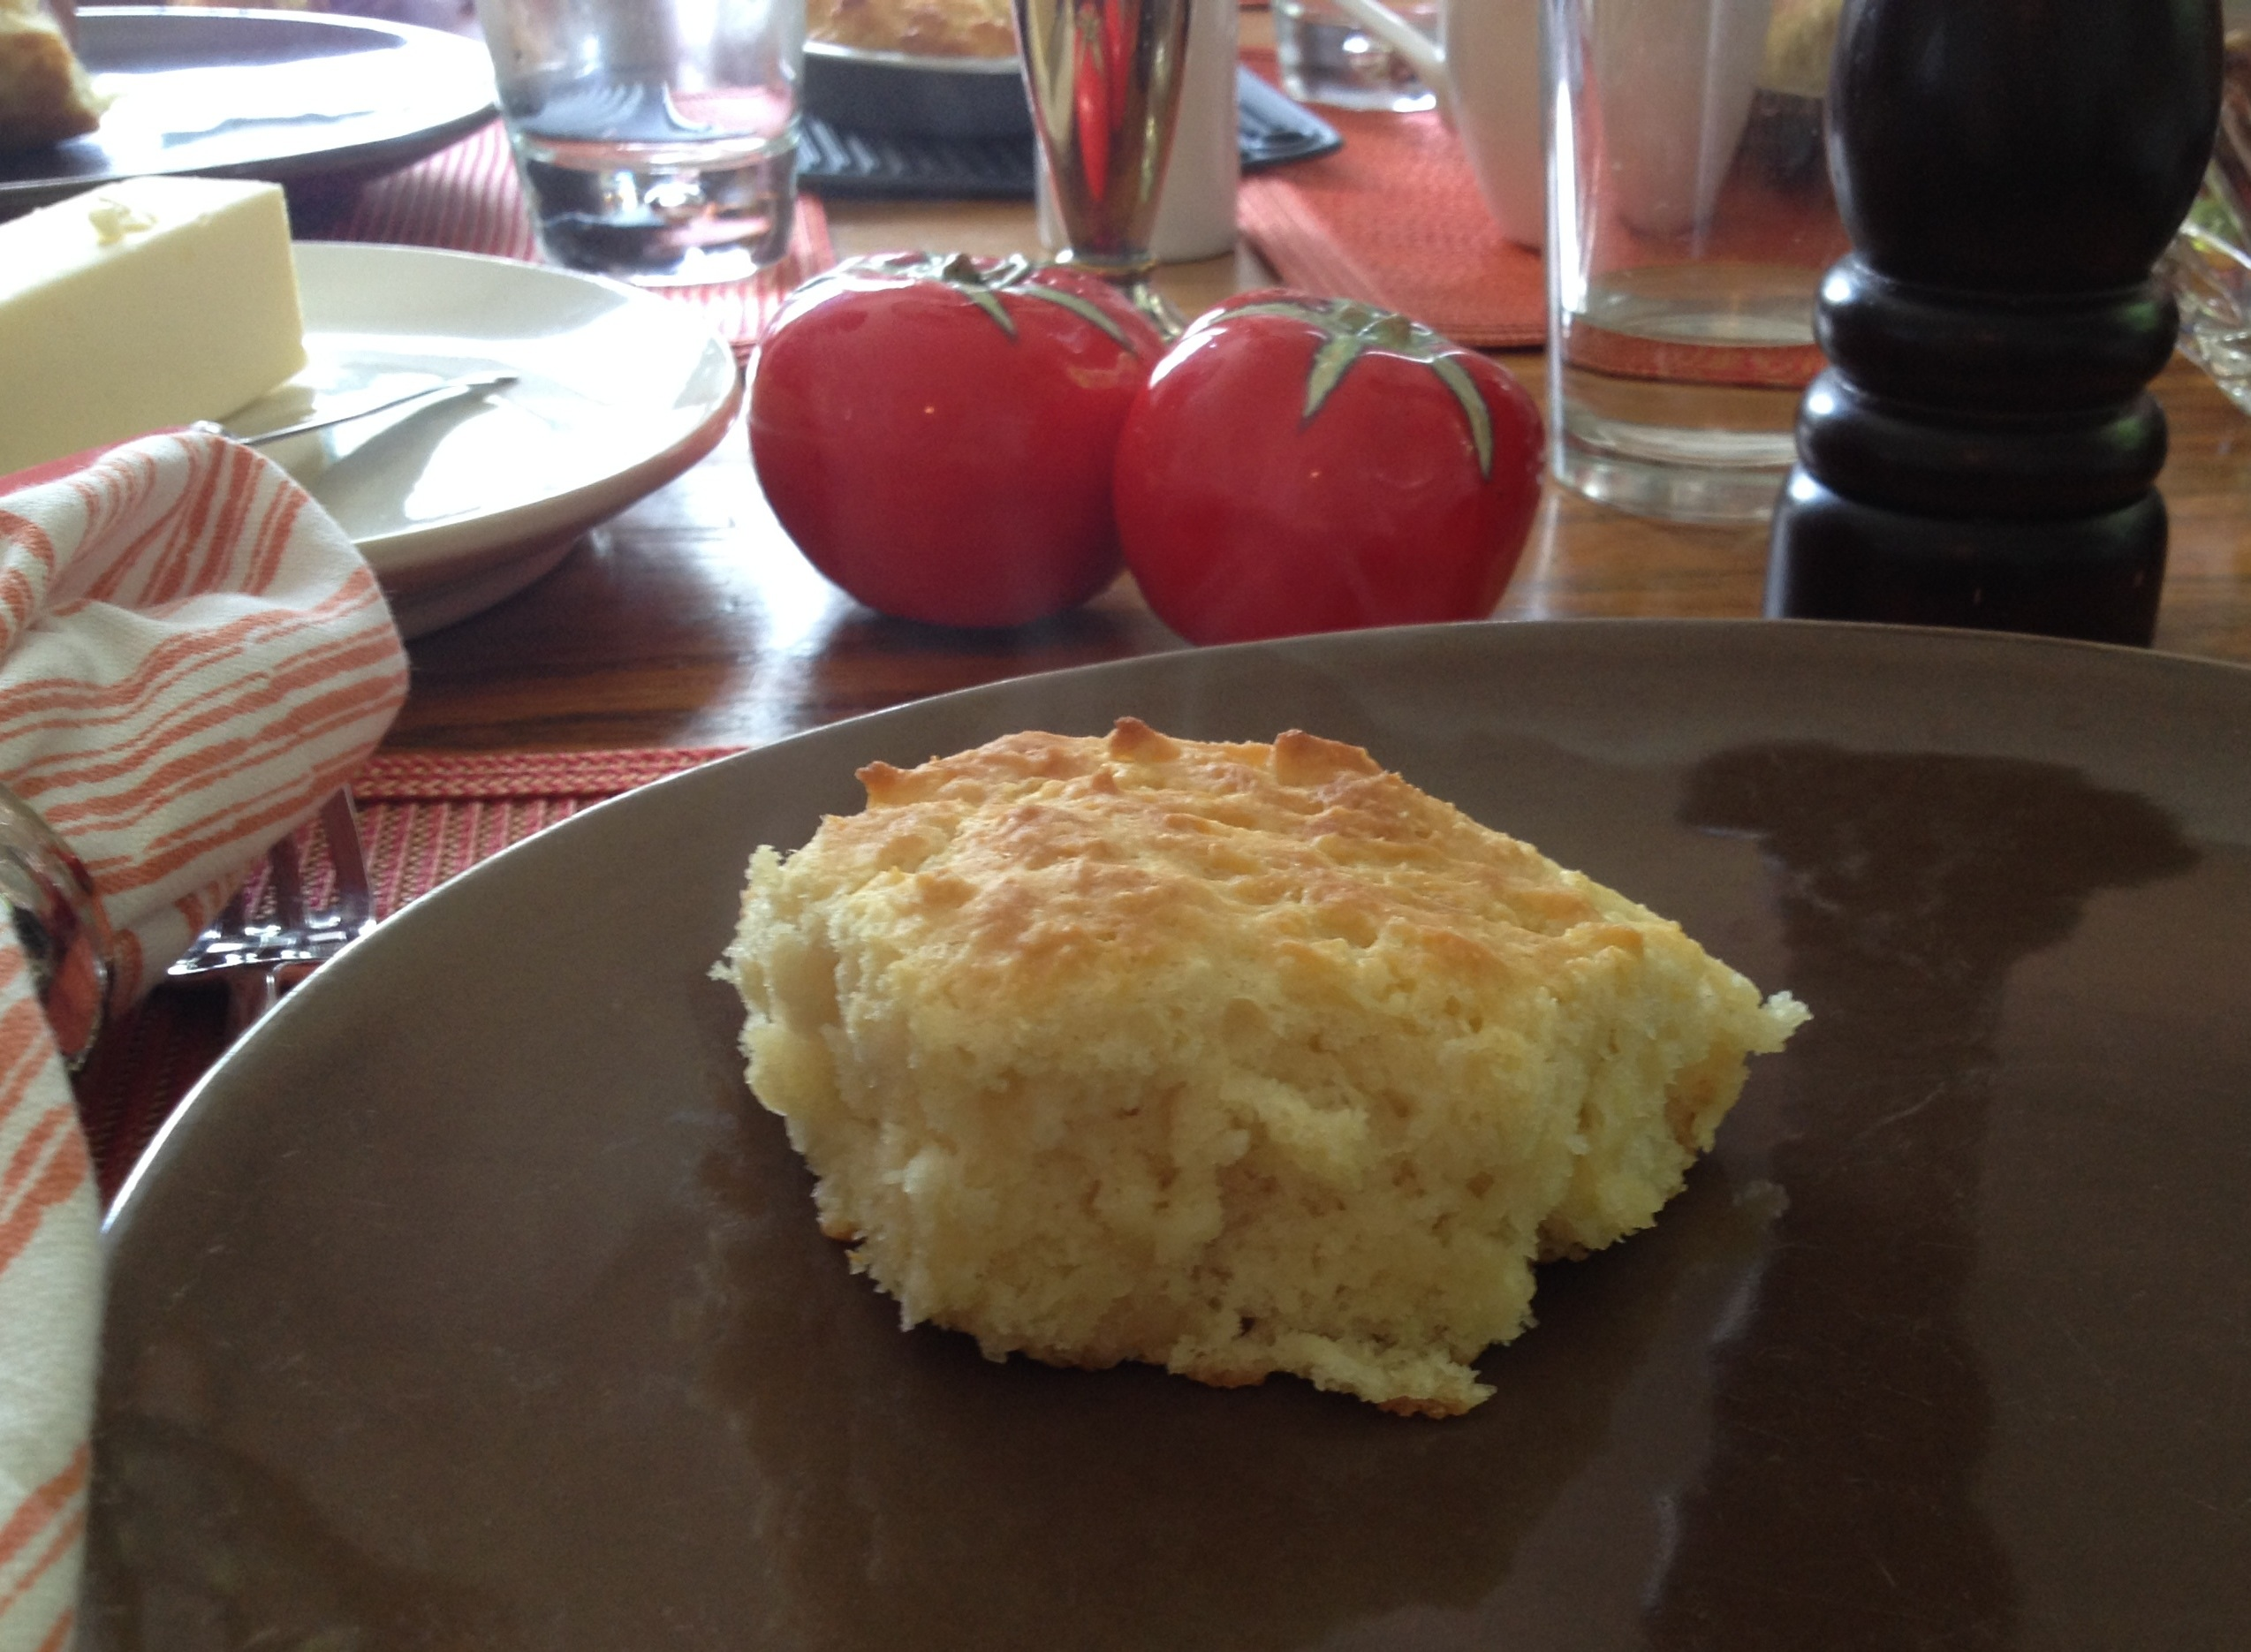 Homemade biscuit on a brown colored plate.